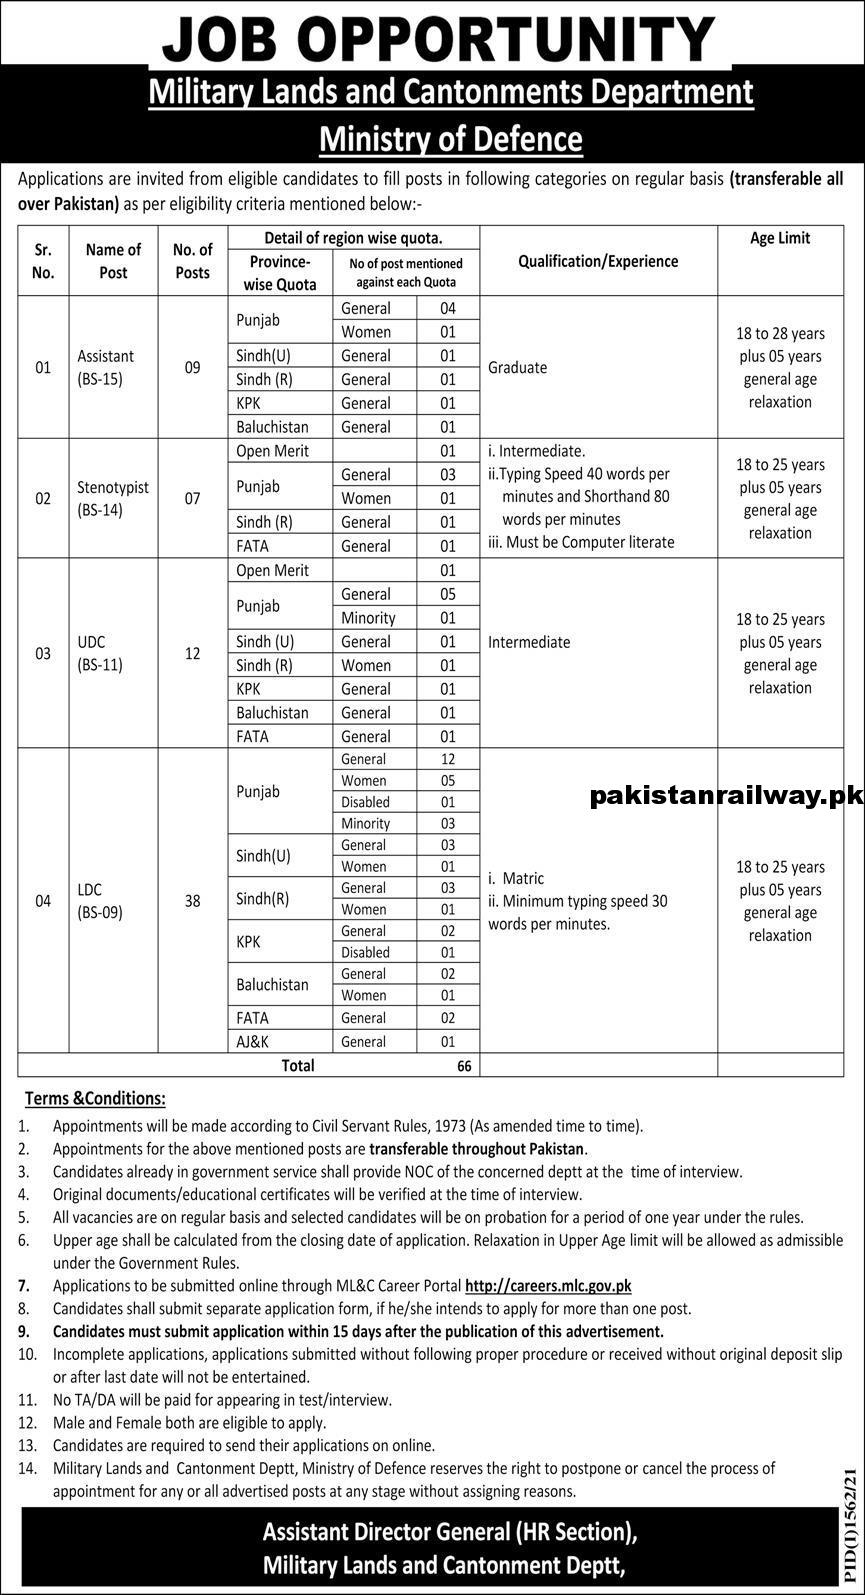 Government Jobs in Pakistan 2021 Matric Base At MLC Military Lands and Cantonment Department